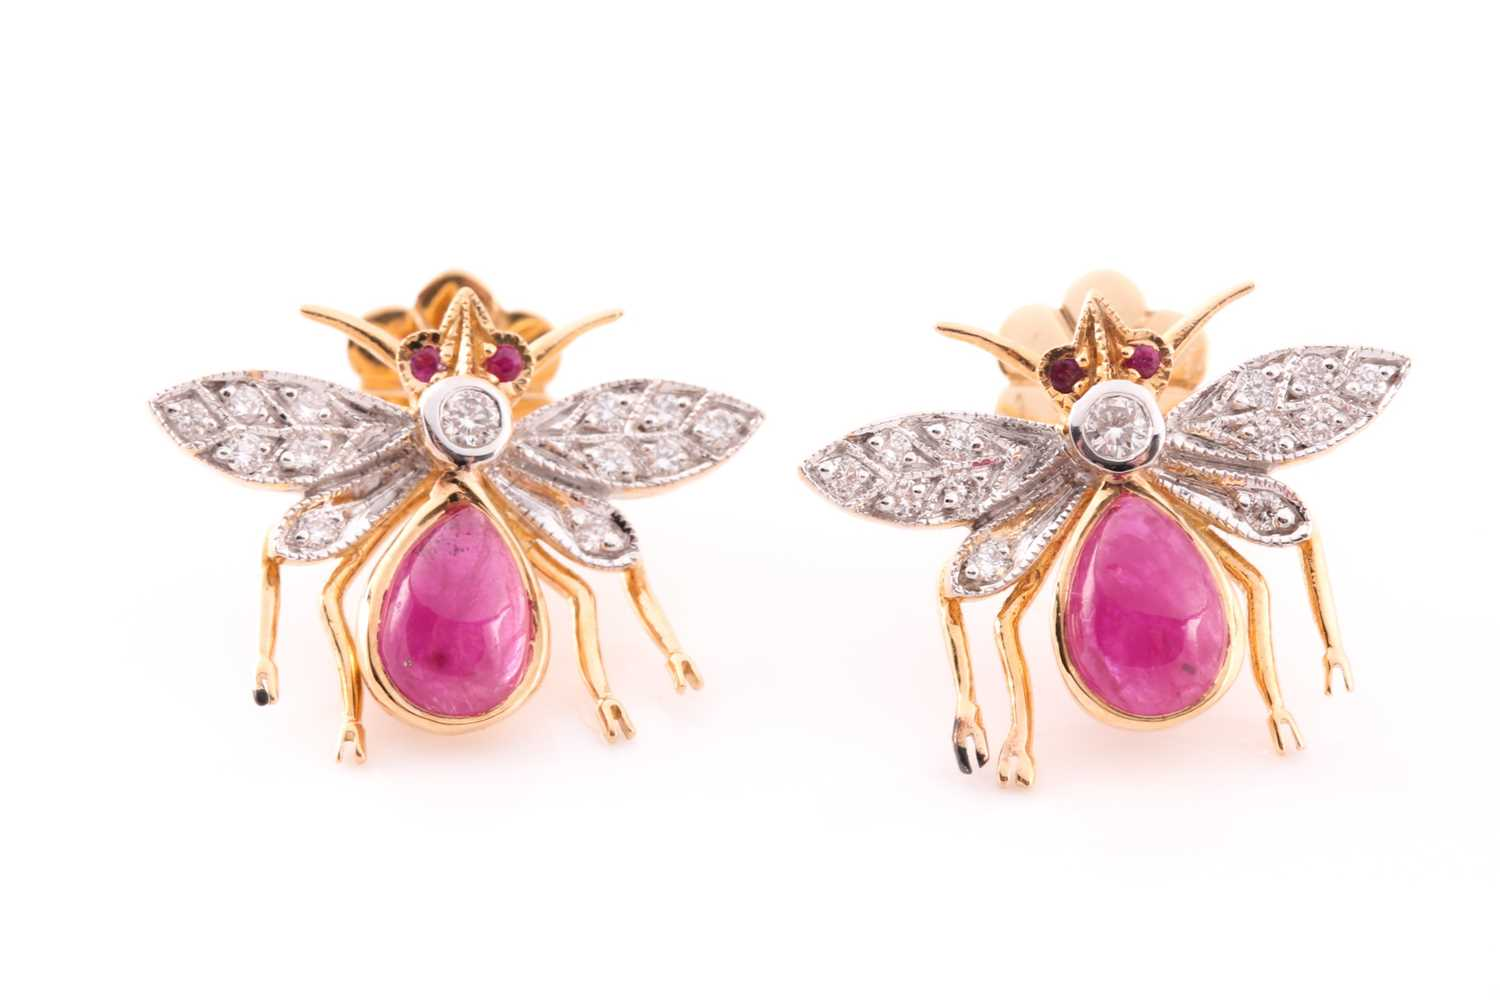 A pair of yellow metal, diamond, and ruby earrings in the form of bees, each bee with a diamond-